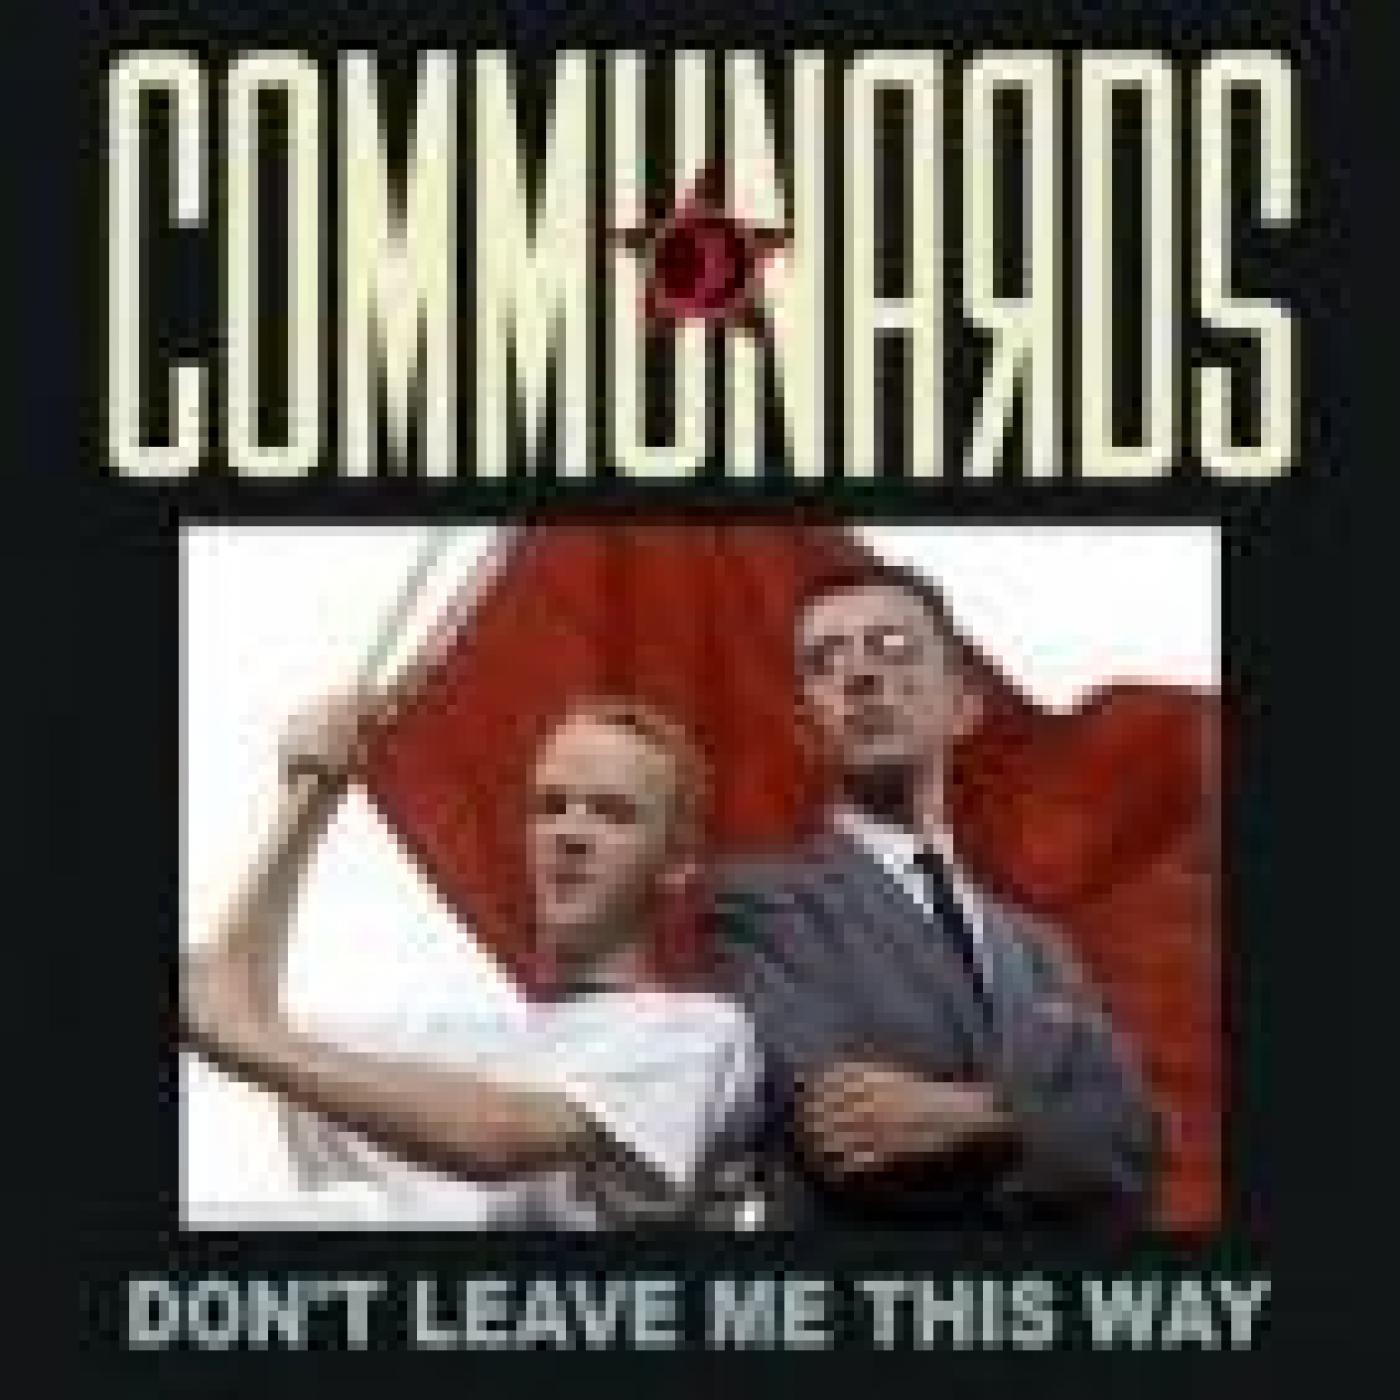 THE COMMUNARDS - Don't leave me this way (1986)